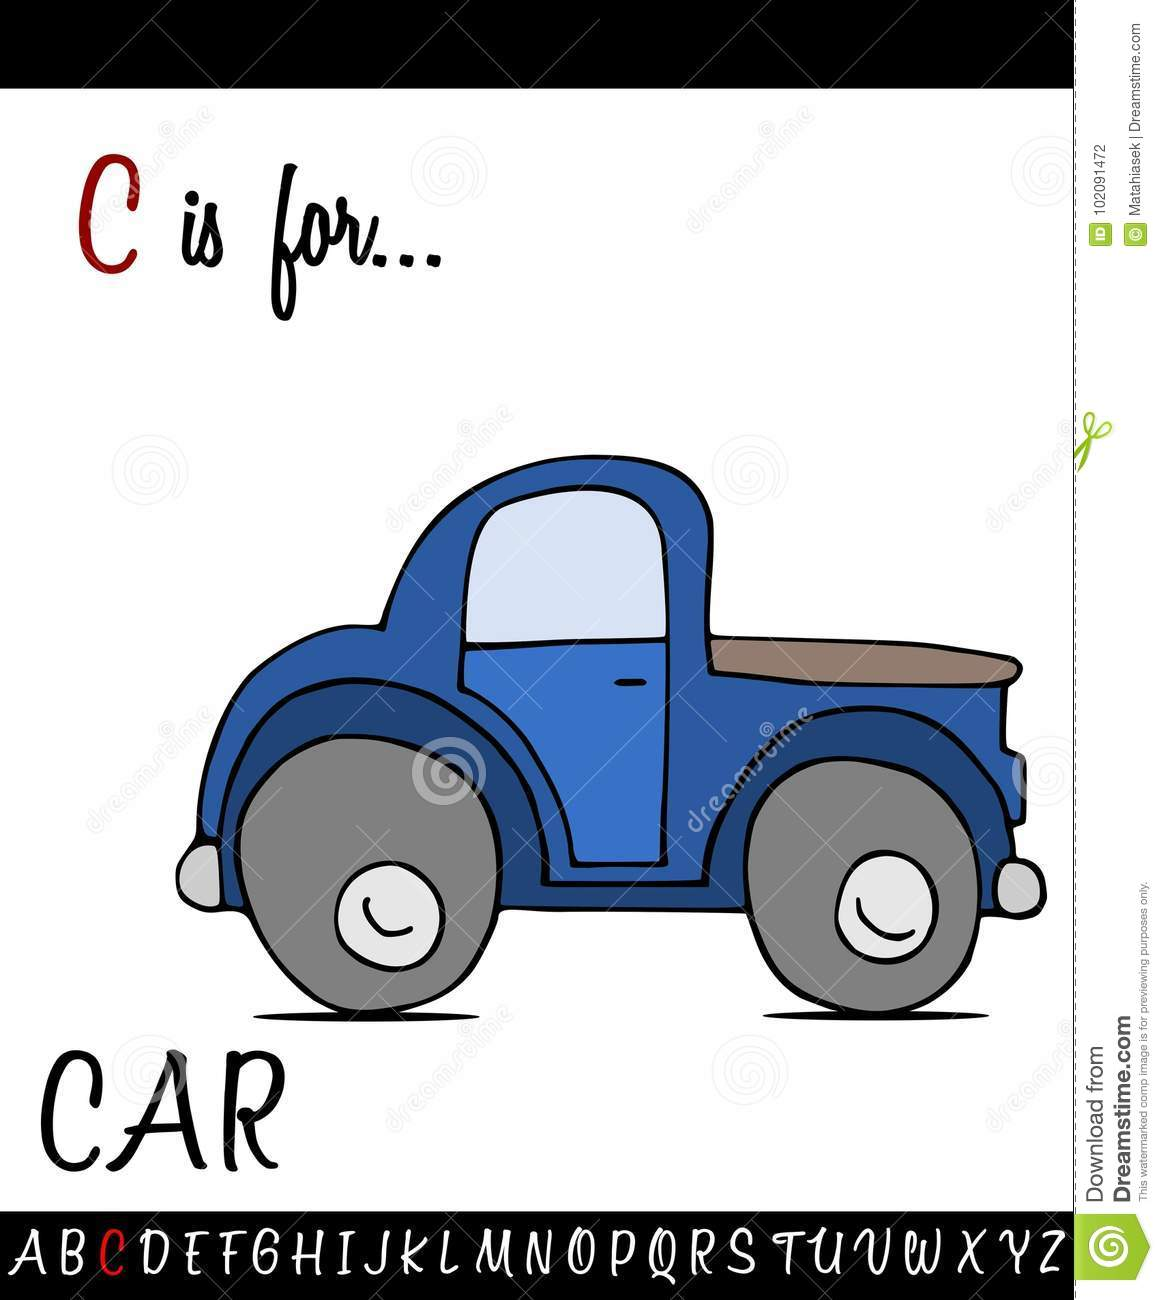 Illustrated Vocabulary Worksheet Card With Cartoon Car